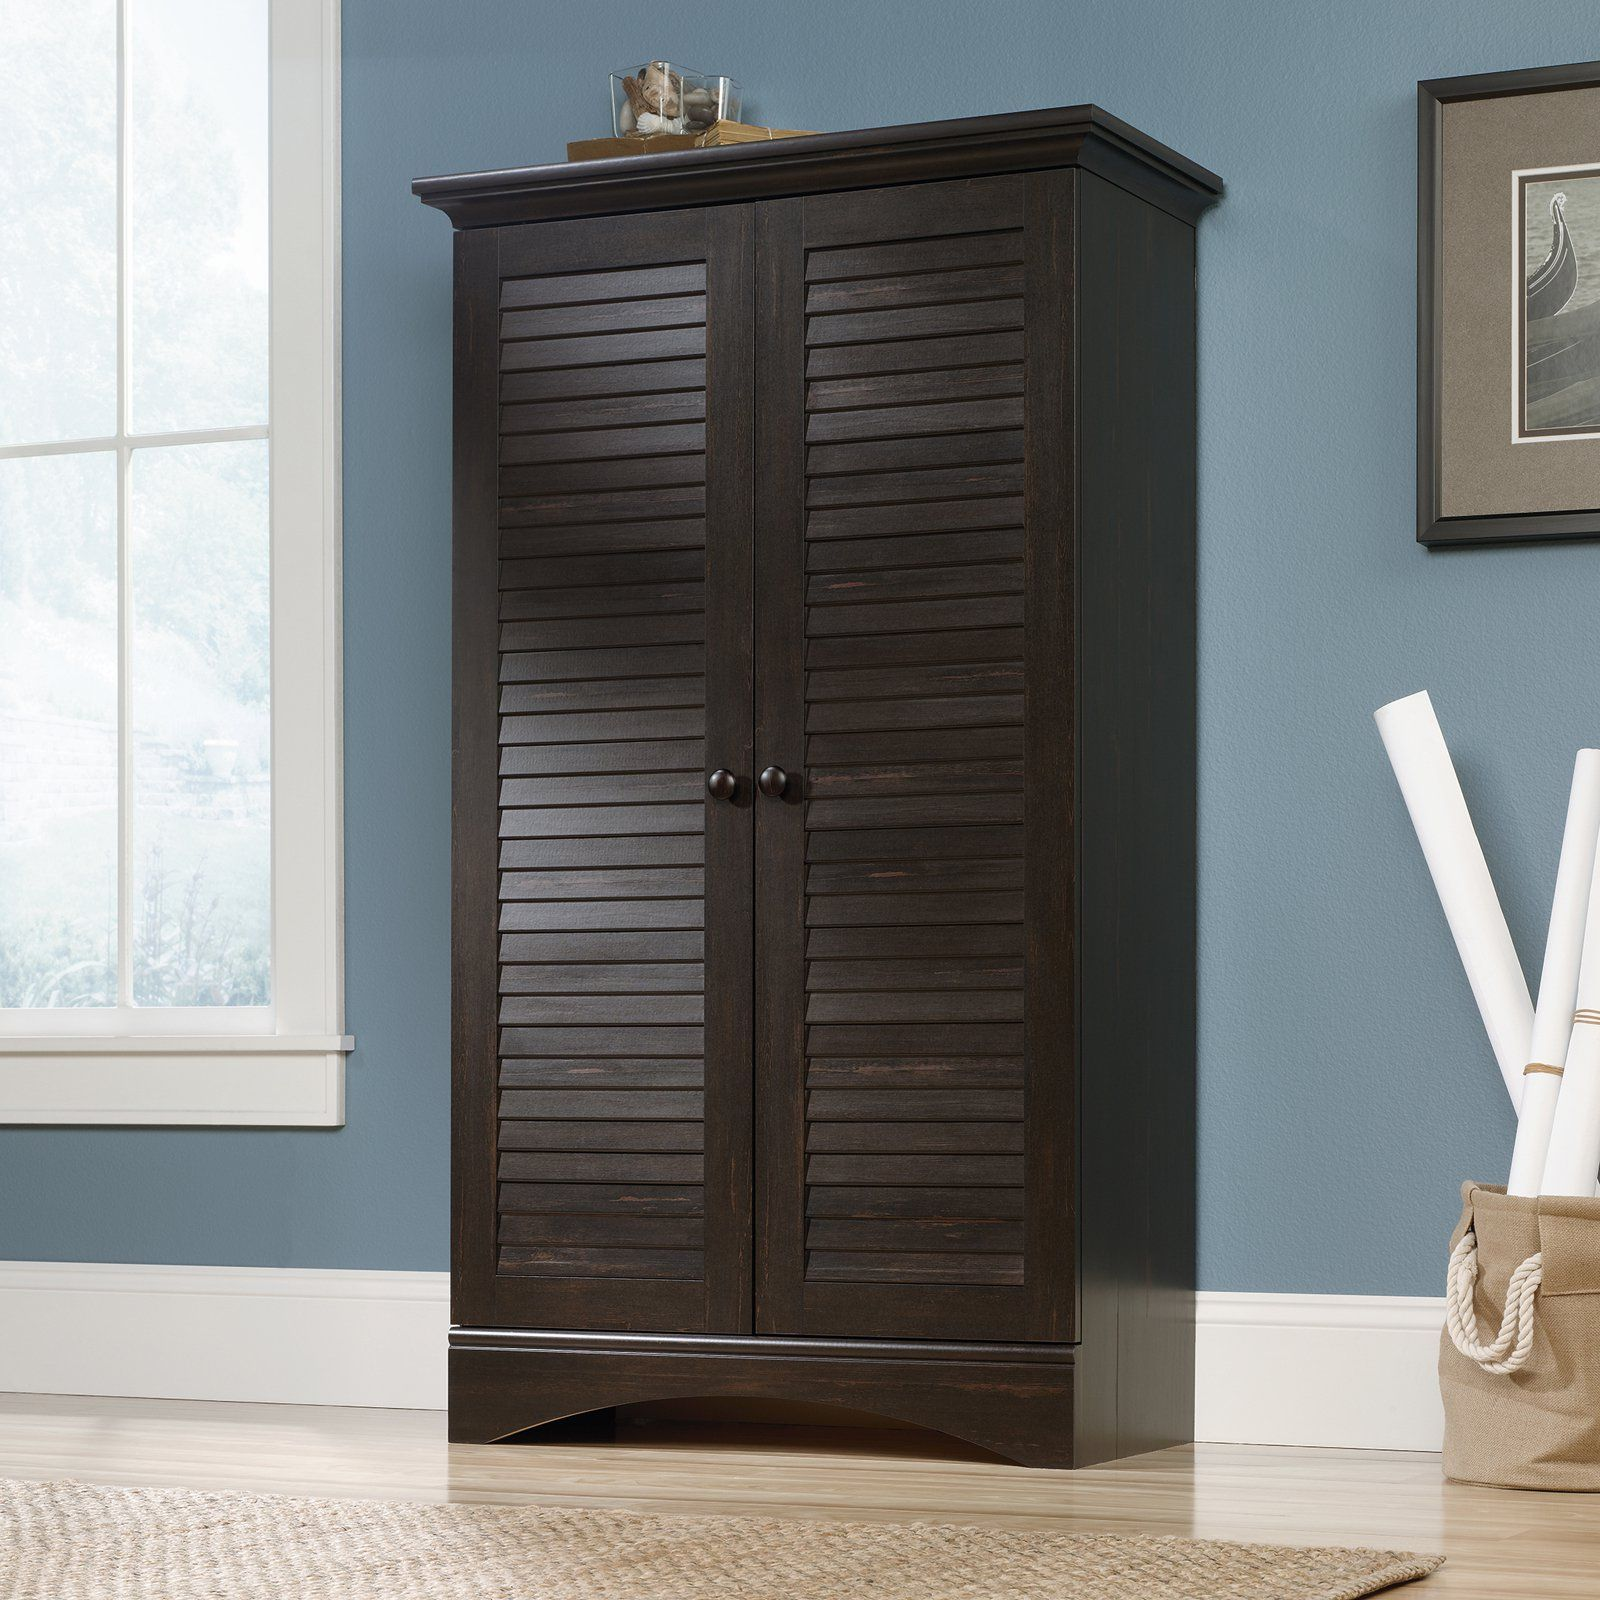 Sauder harbor view storage cabinet tidy up your living room craft